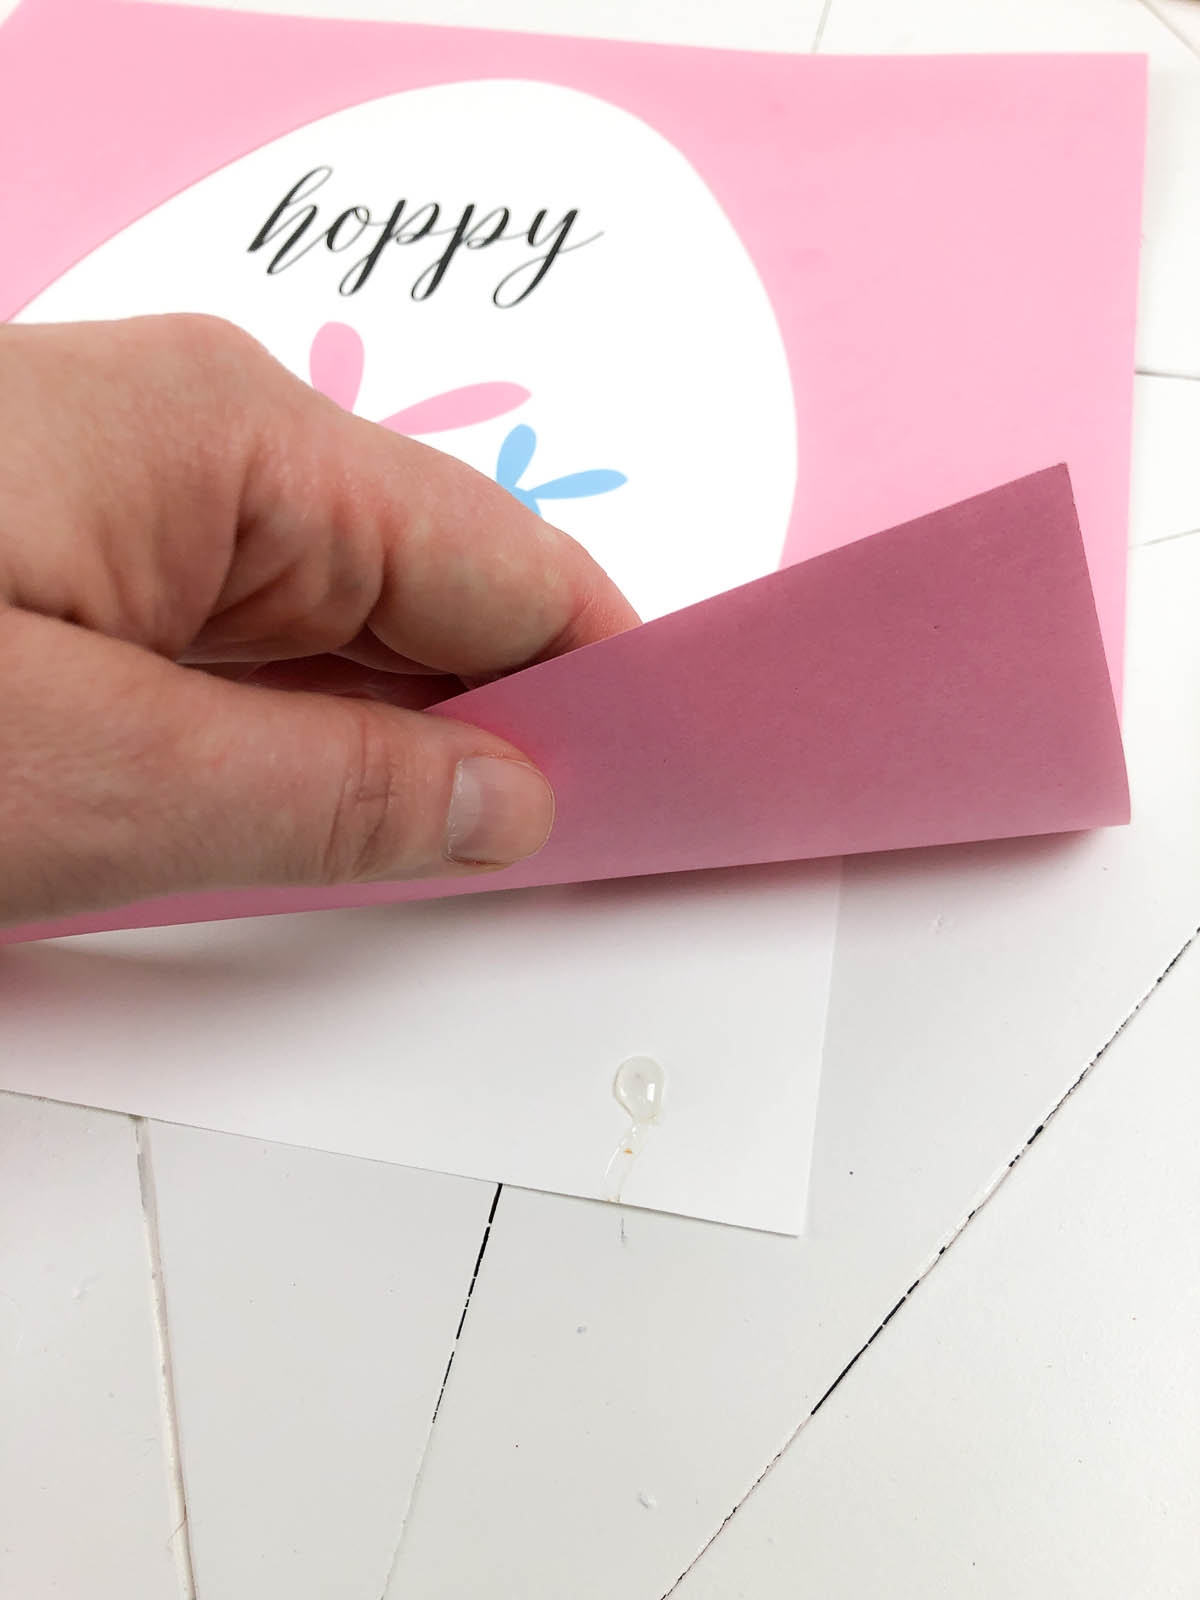 gluing the printable to the pastel scrapbooking paper